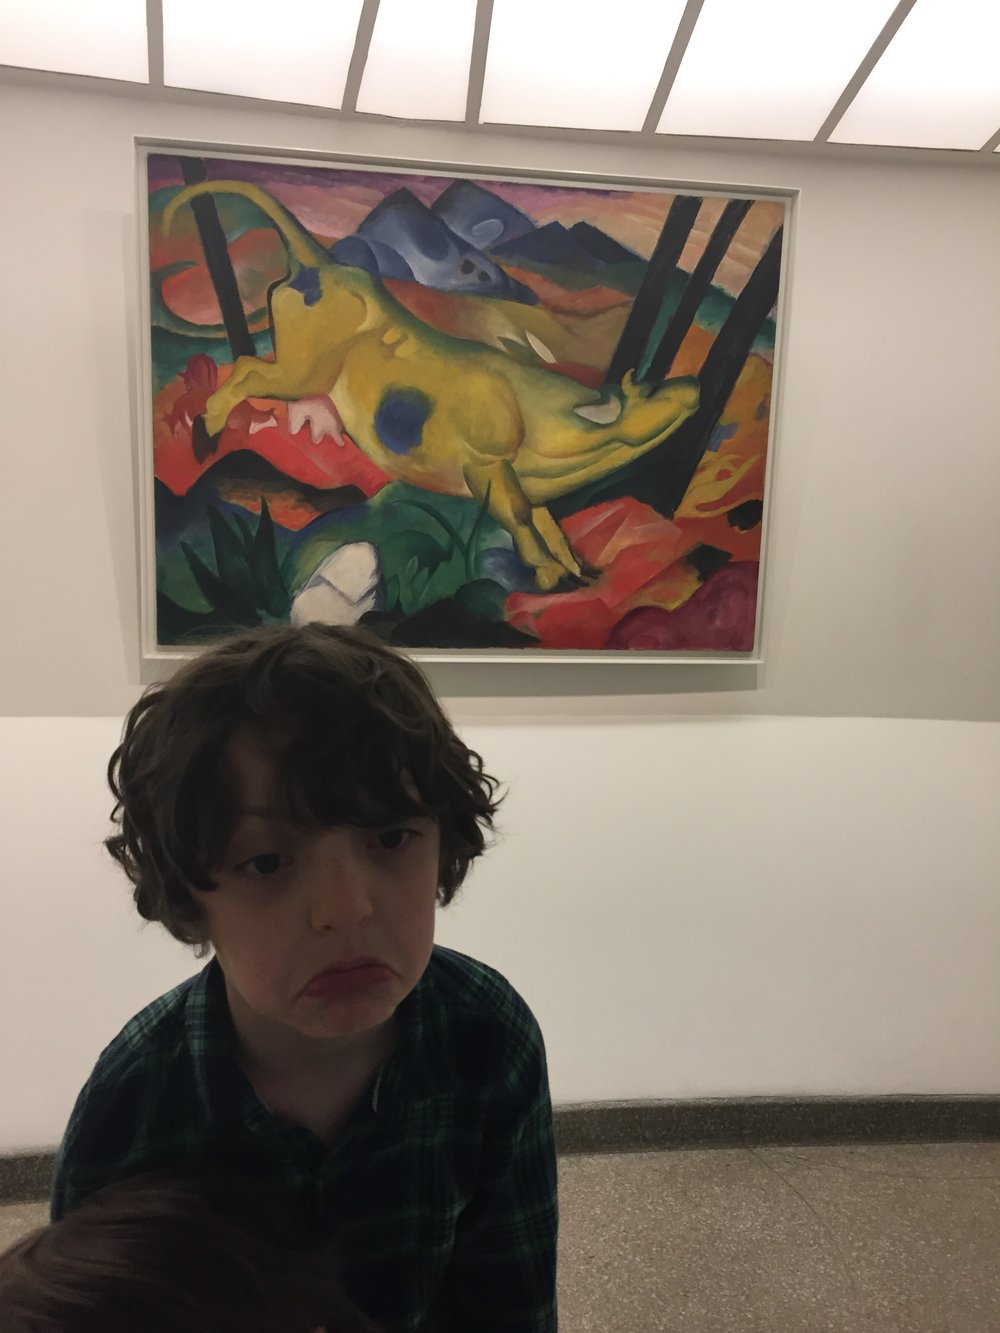 Zephyr found this Franz Marc to be sad. It made me look at it differently.